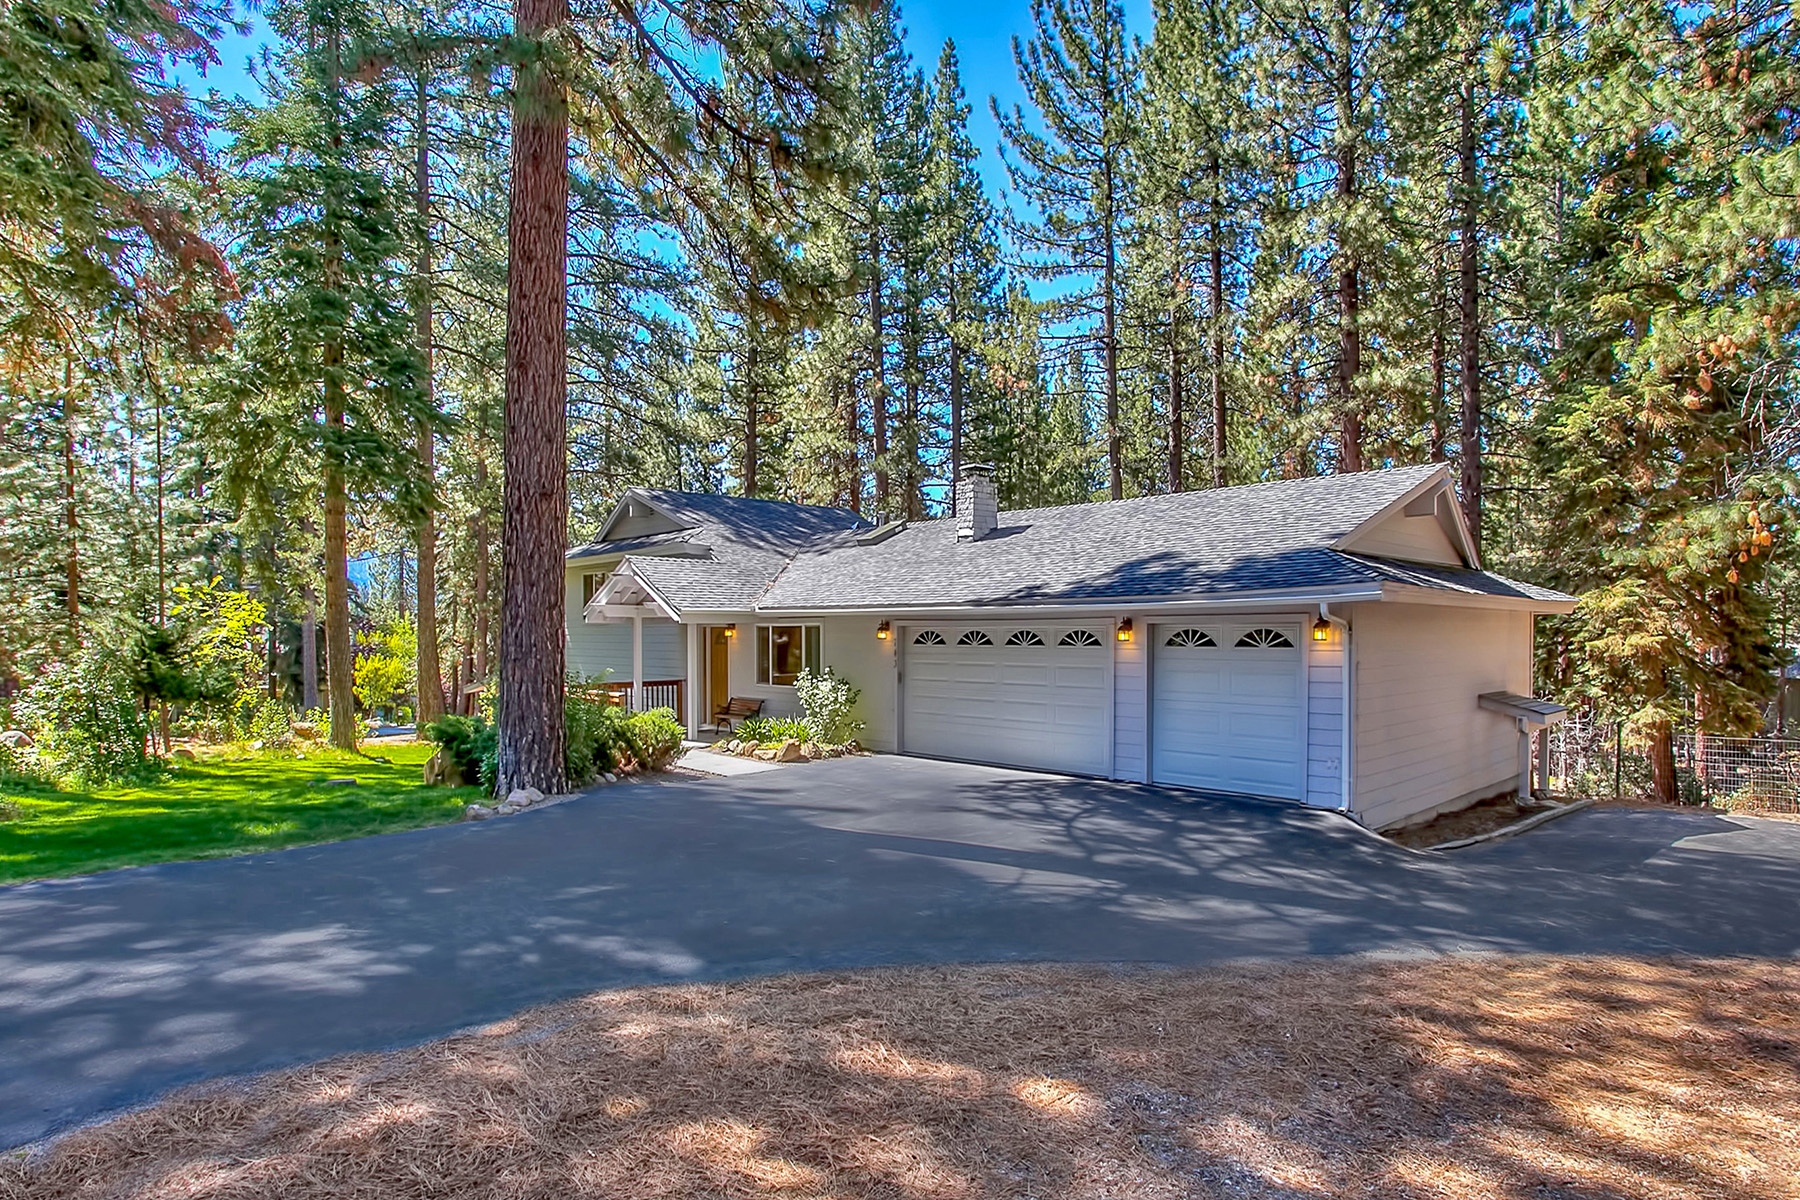 Single Family Home for Sale at 743 James Lane Incline Village, Nevada 89451 United States